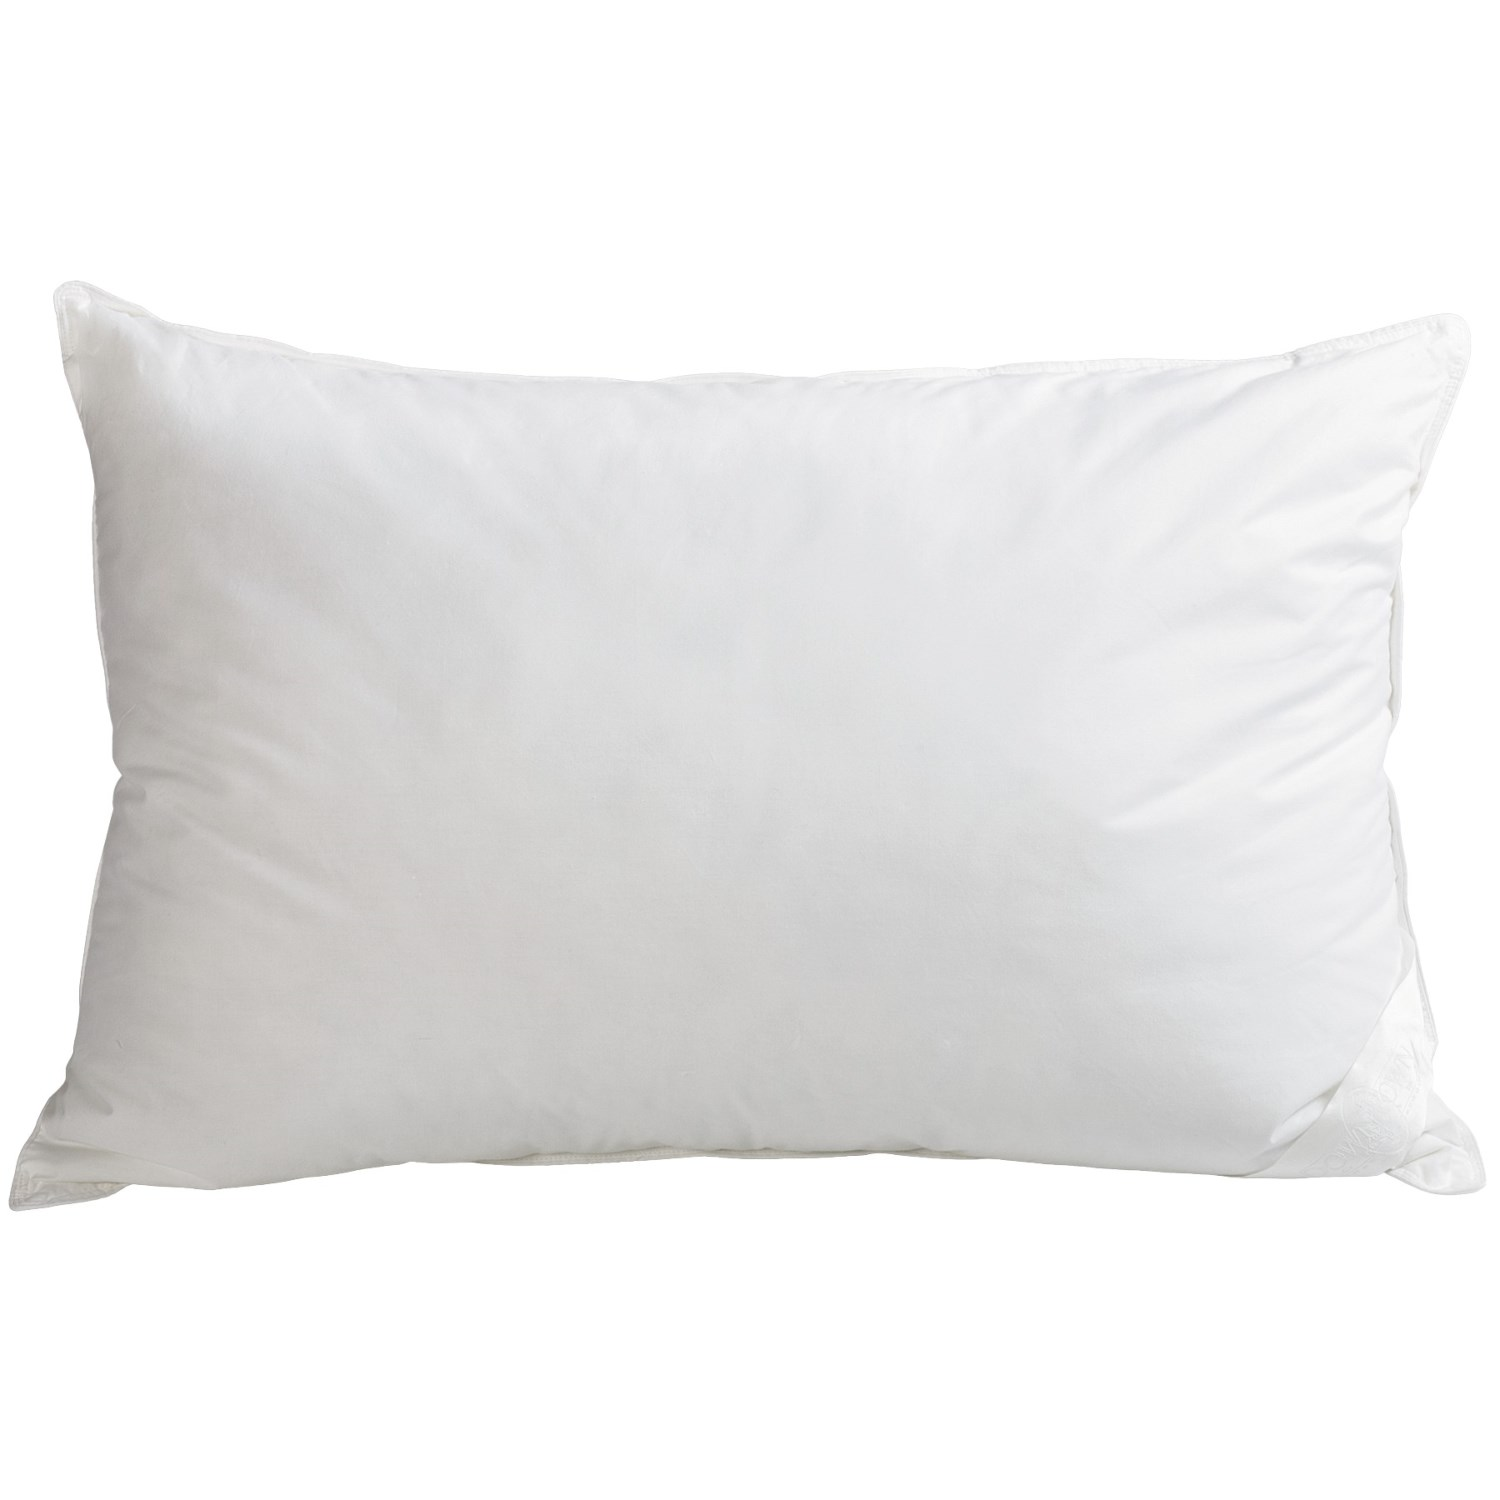 Pillows up to 77% off at Sierra Trading Post